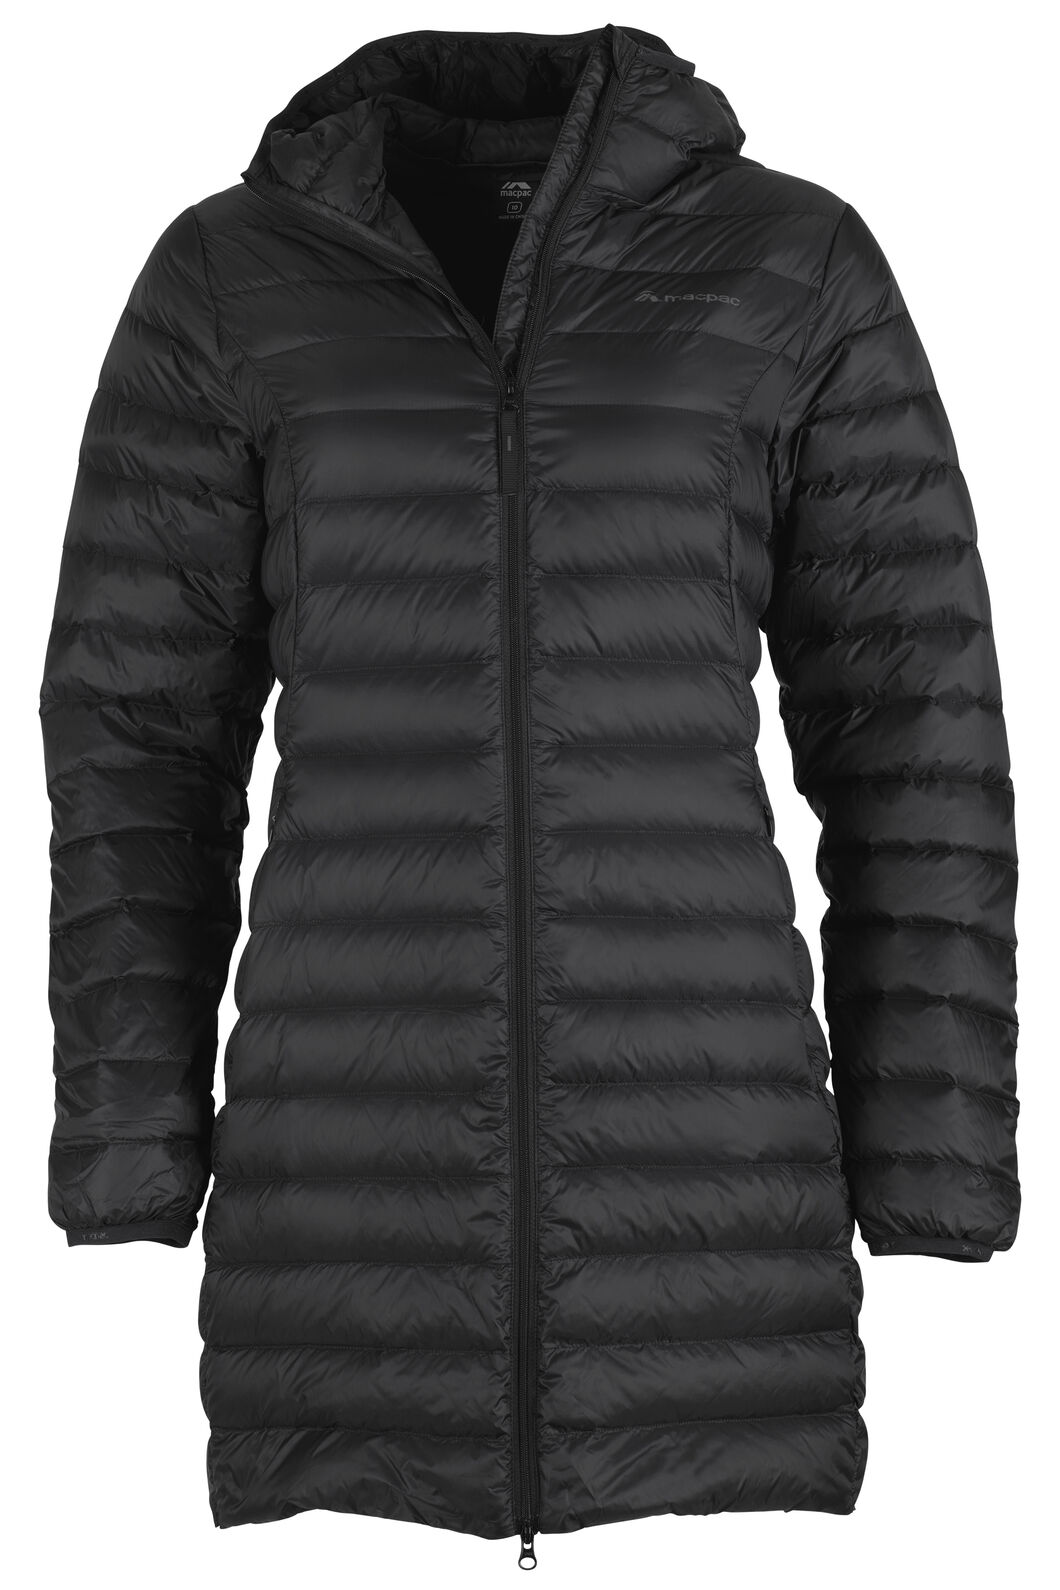 Uber Light Down Coat - Women's, Black, hi-res